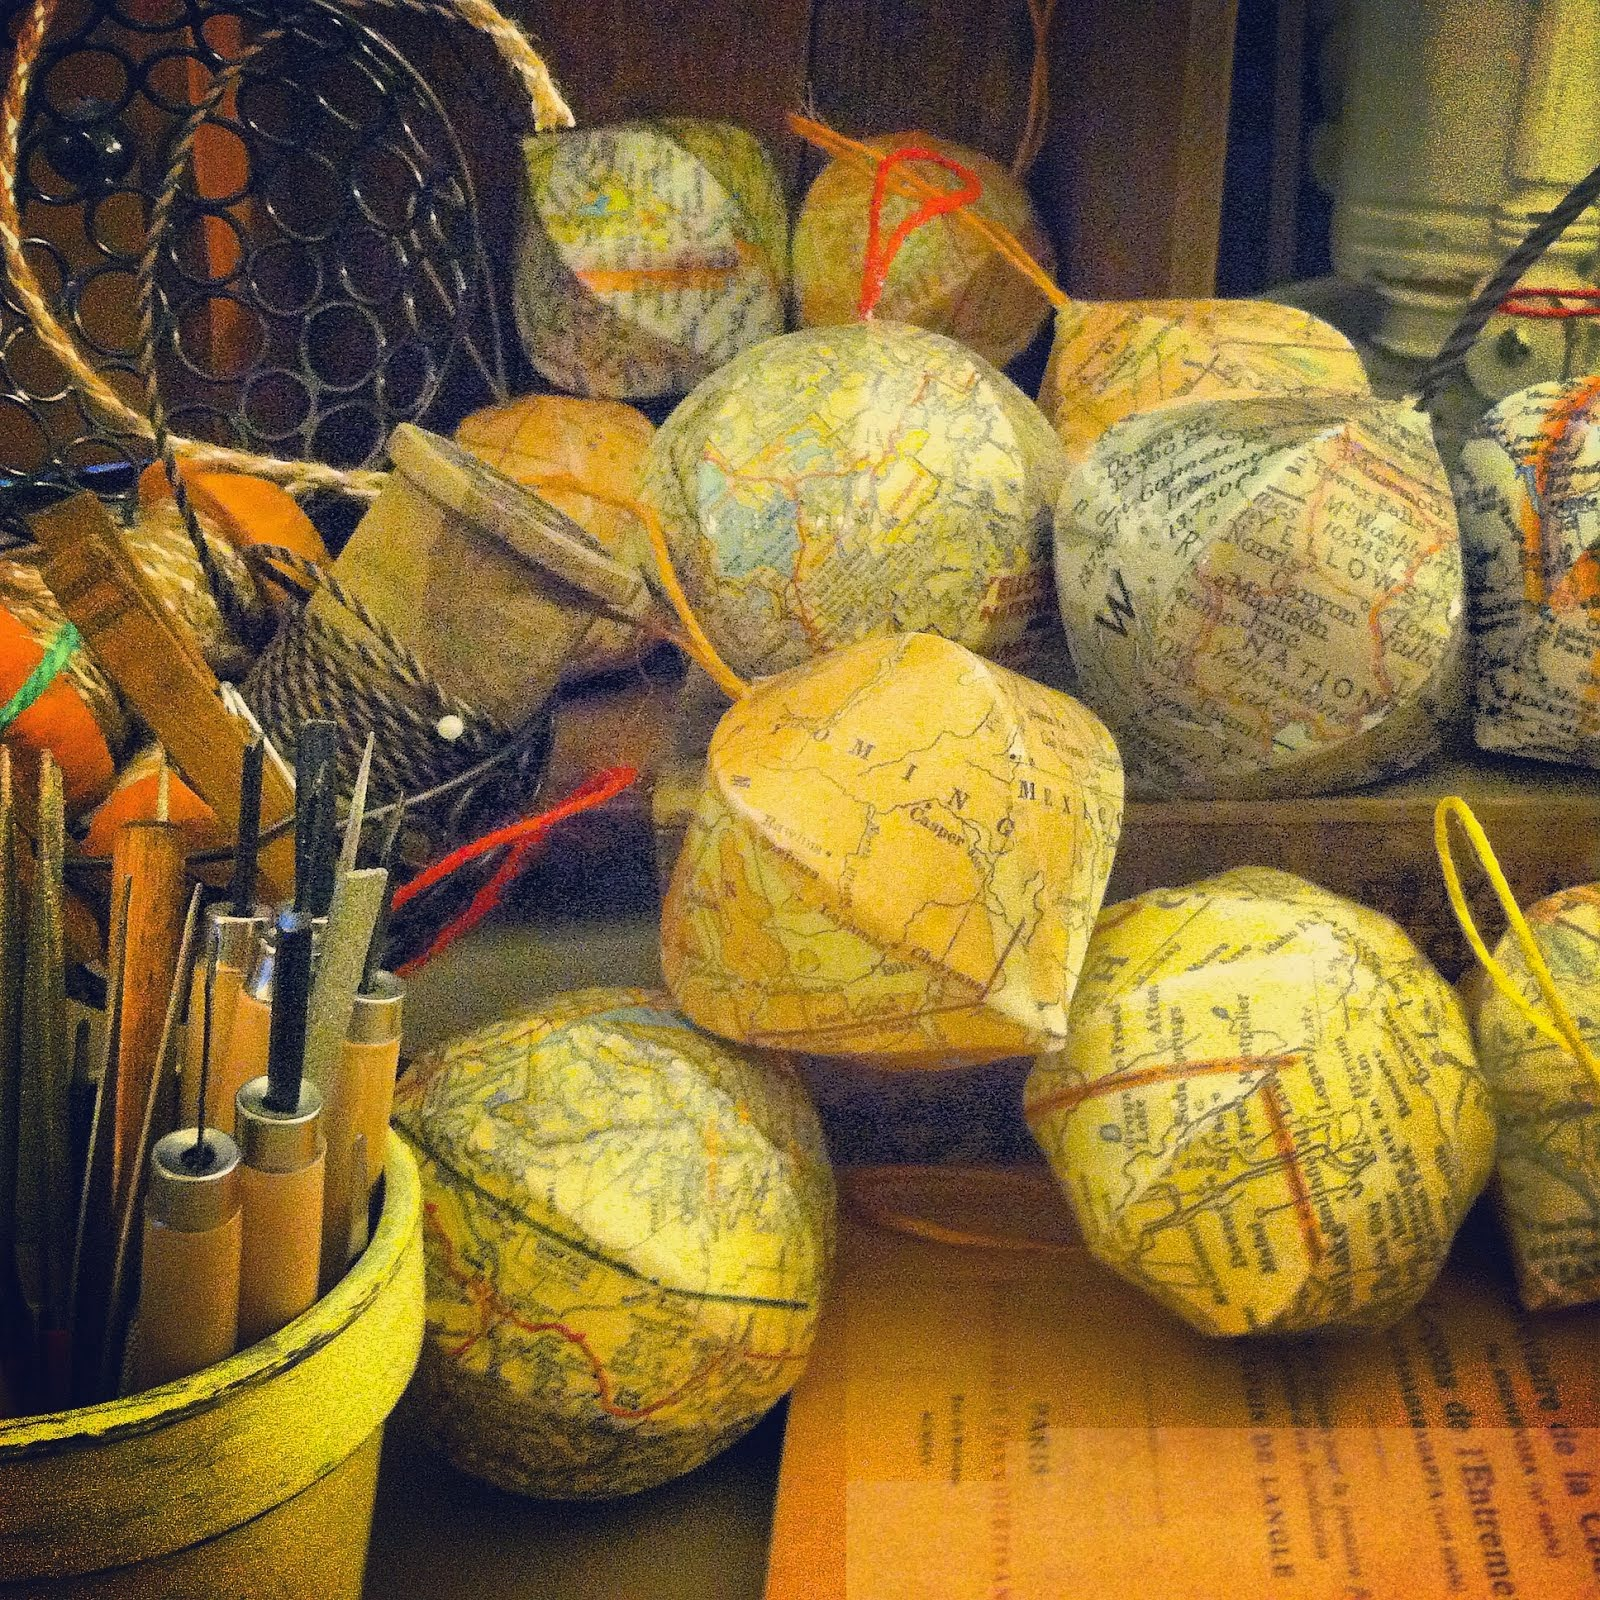 custom order vintage map ornaments/globes